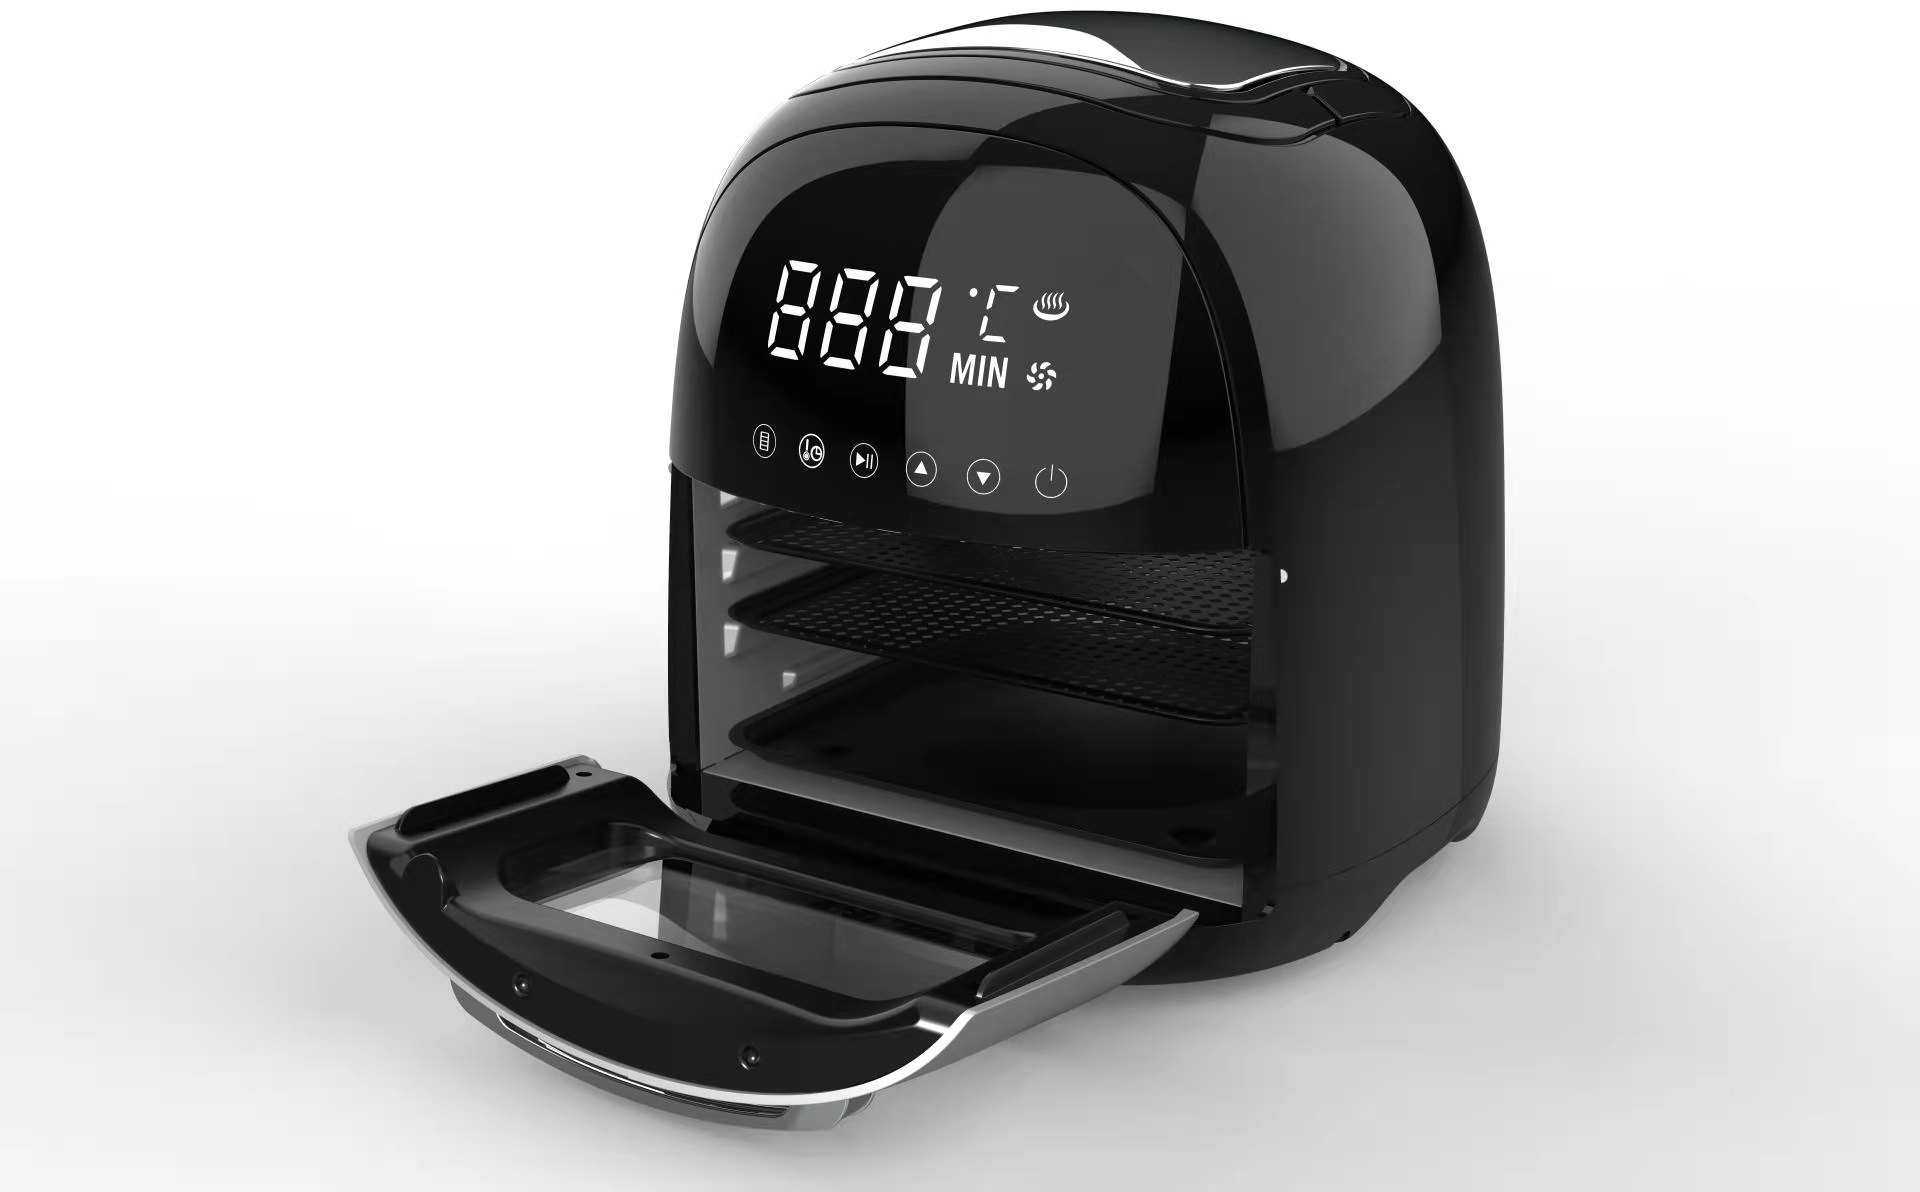 Top sale guaranteed quality 220V healthy way for frying without oil LED display with touch screen air fryer